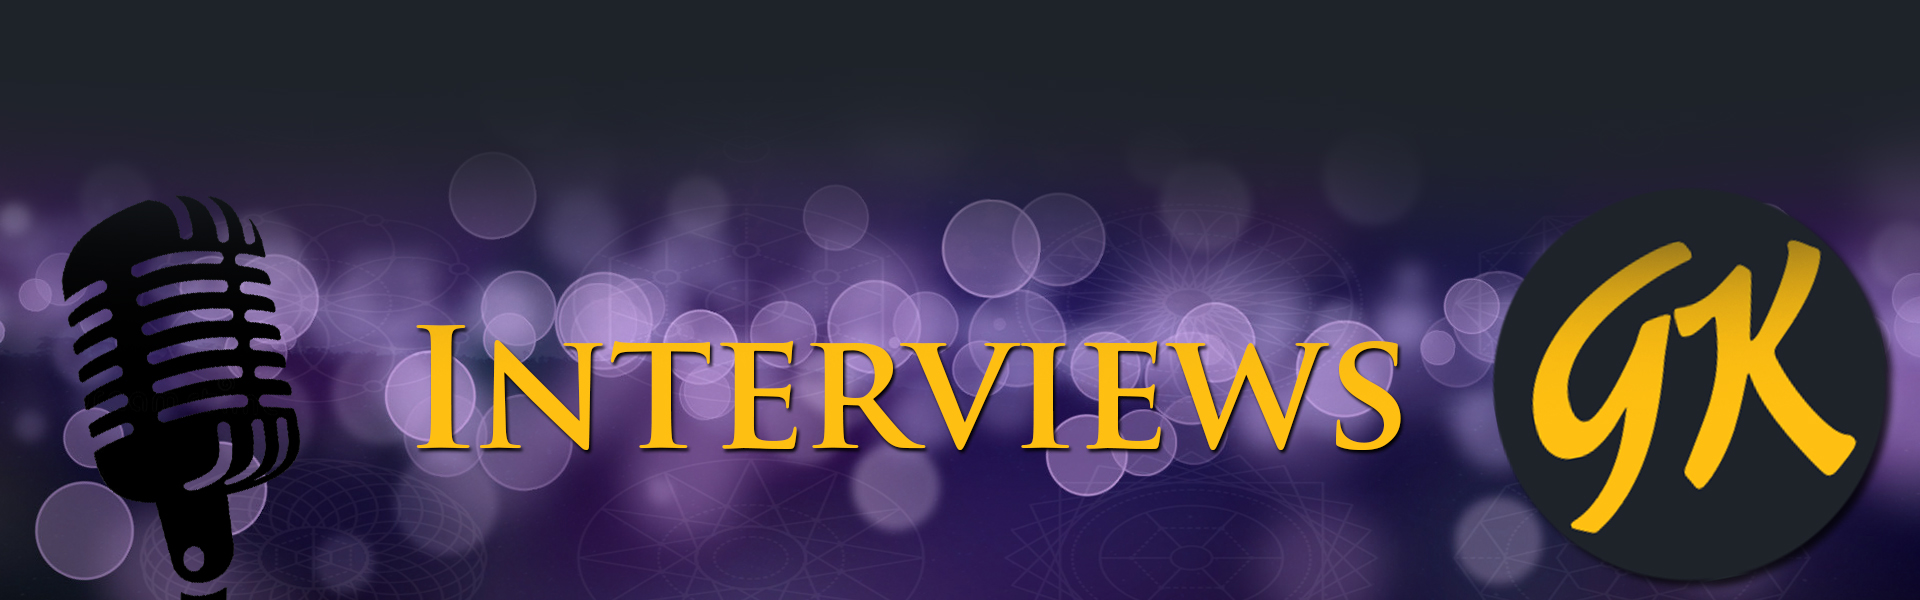 Interviews-hed3